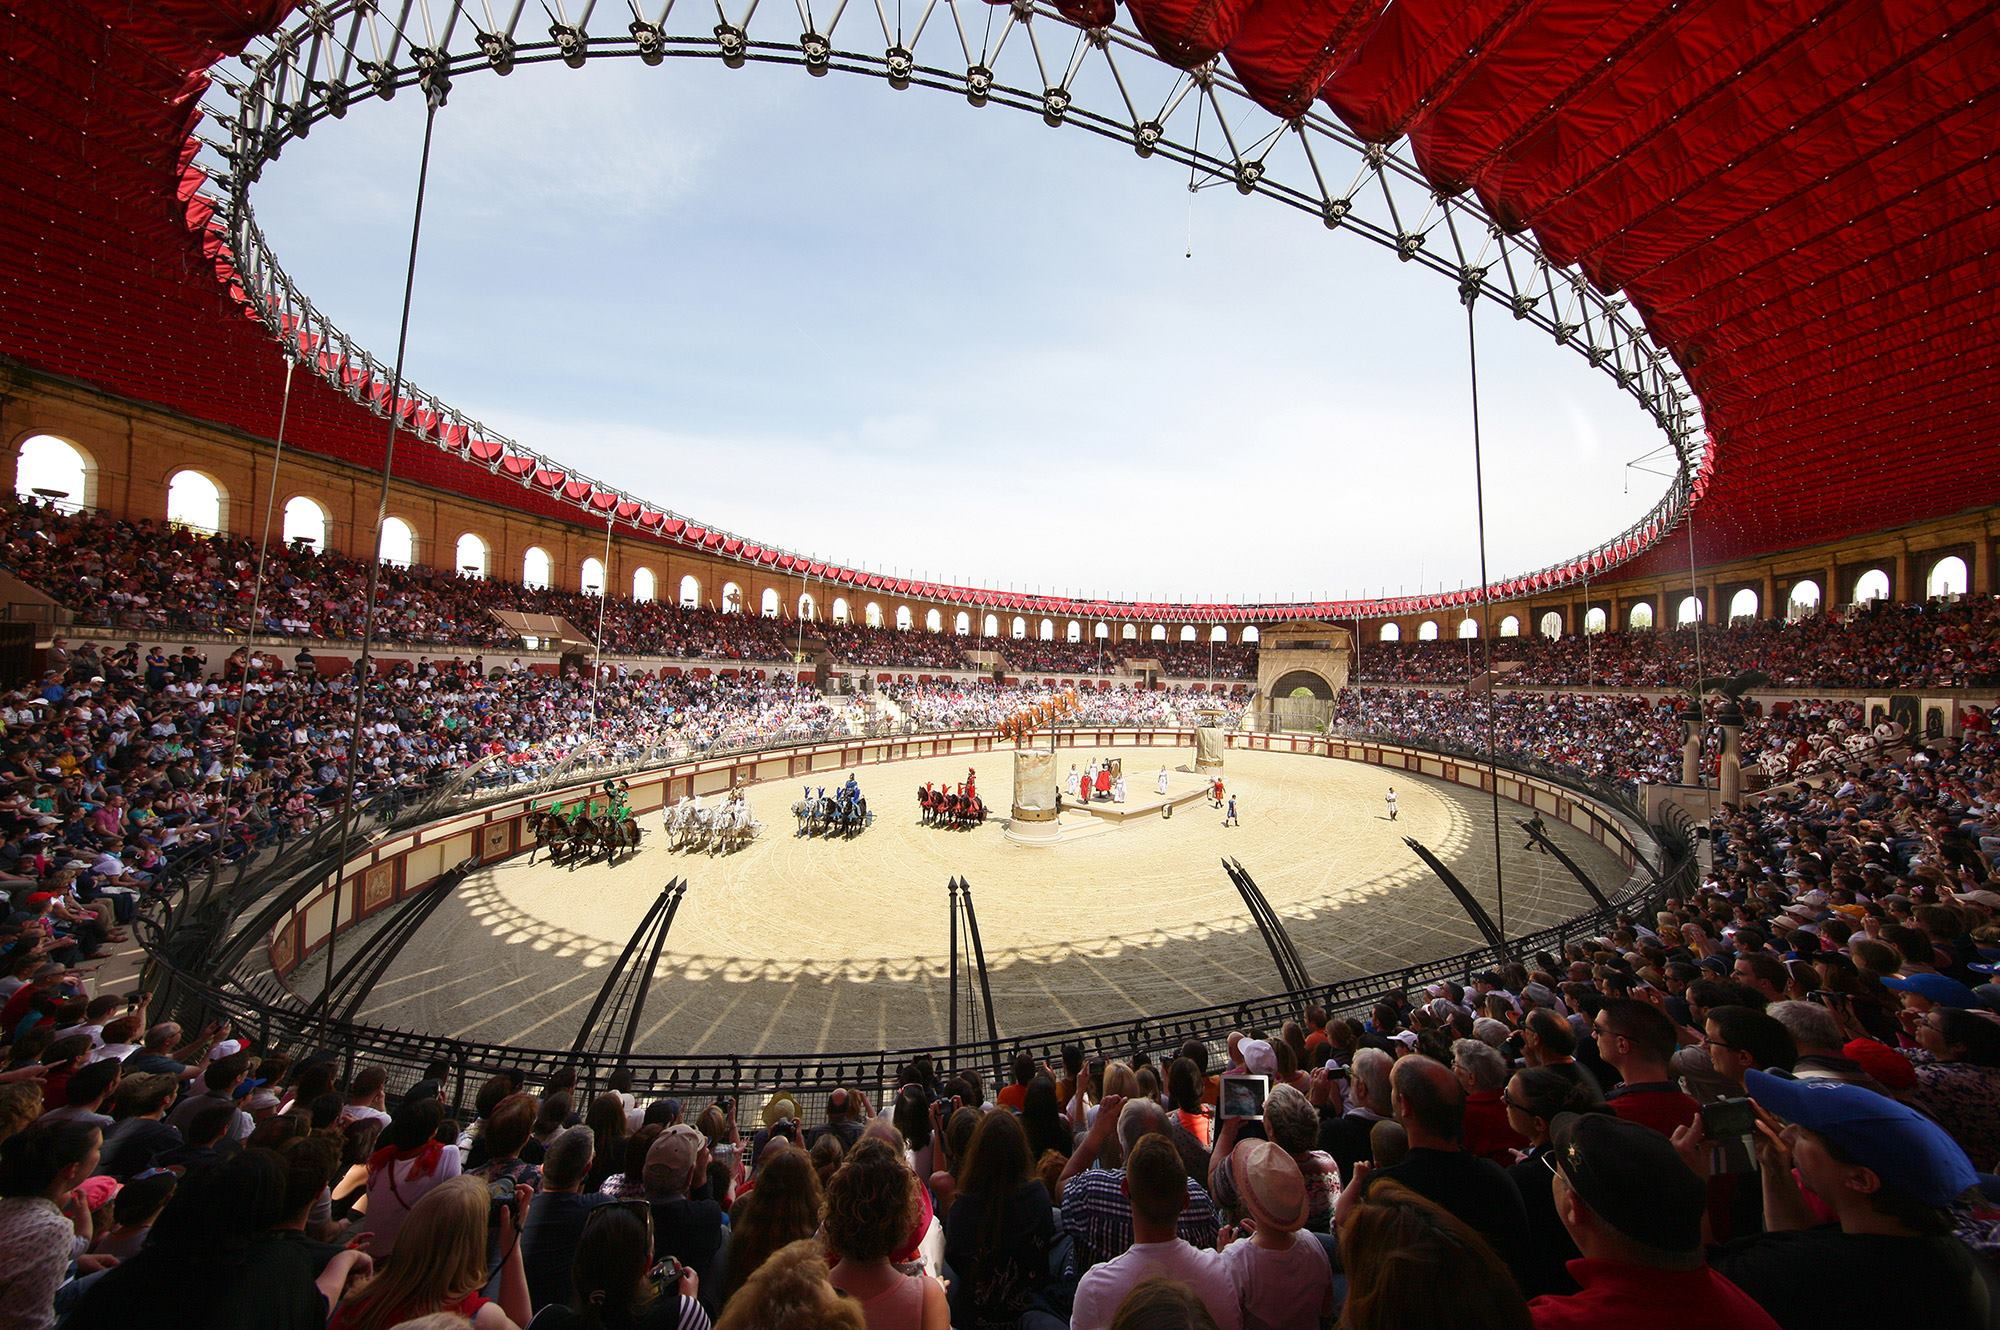 PUY DU FOU; ARENA; FRENCH AMUSEMENT PARK